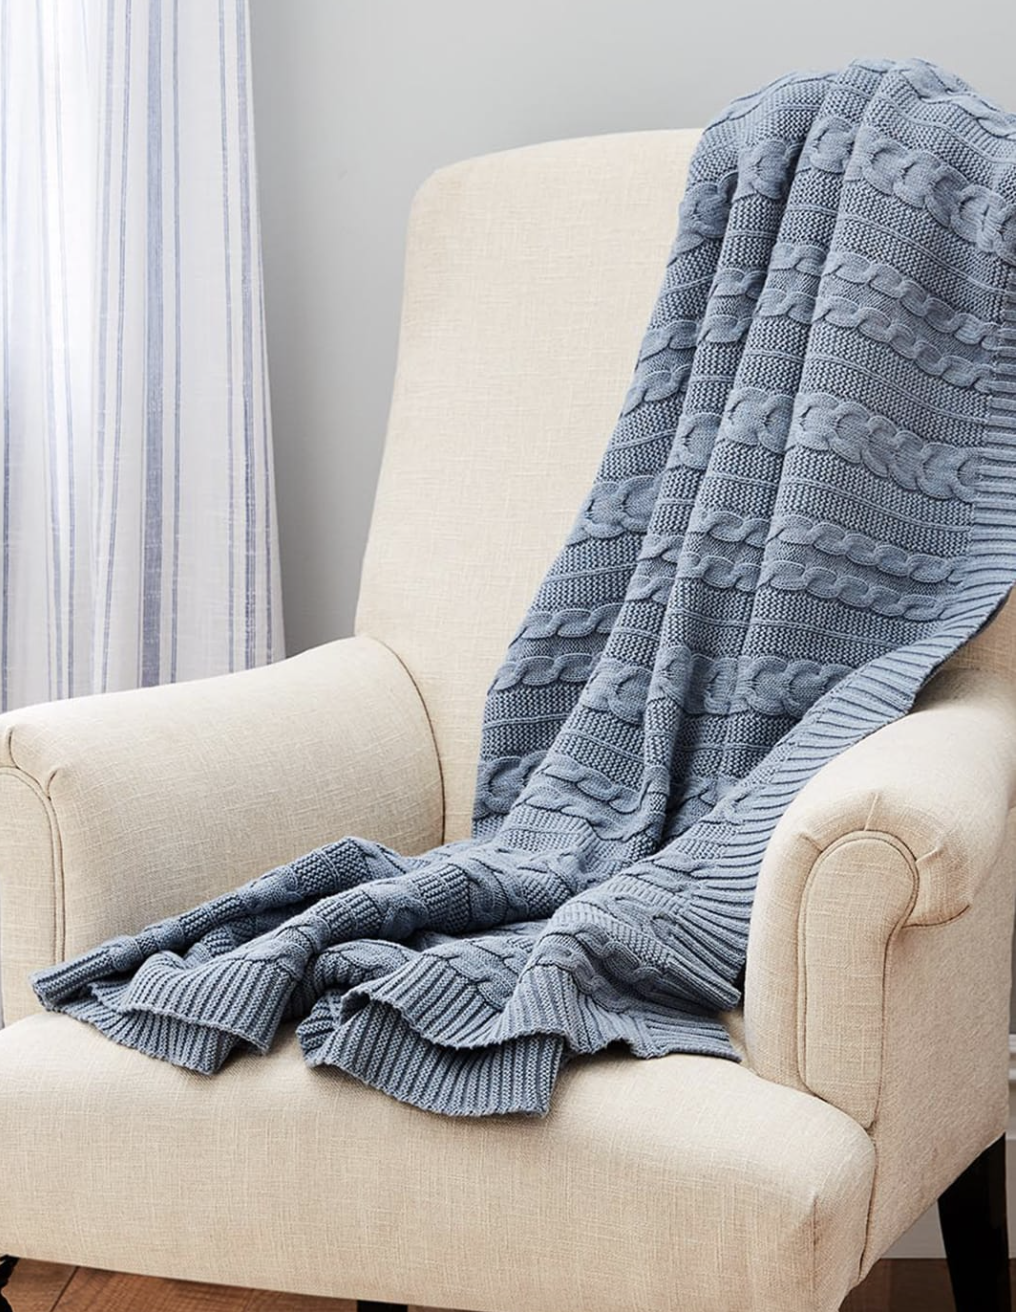 the throw blanket